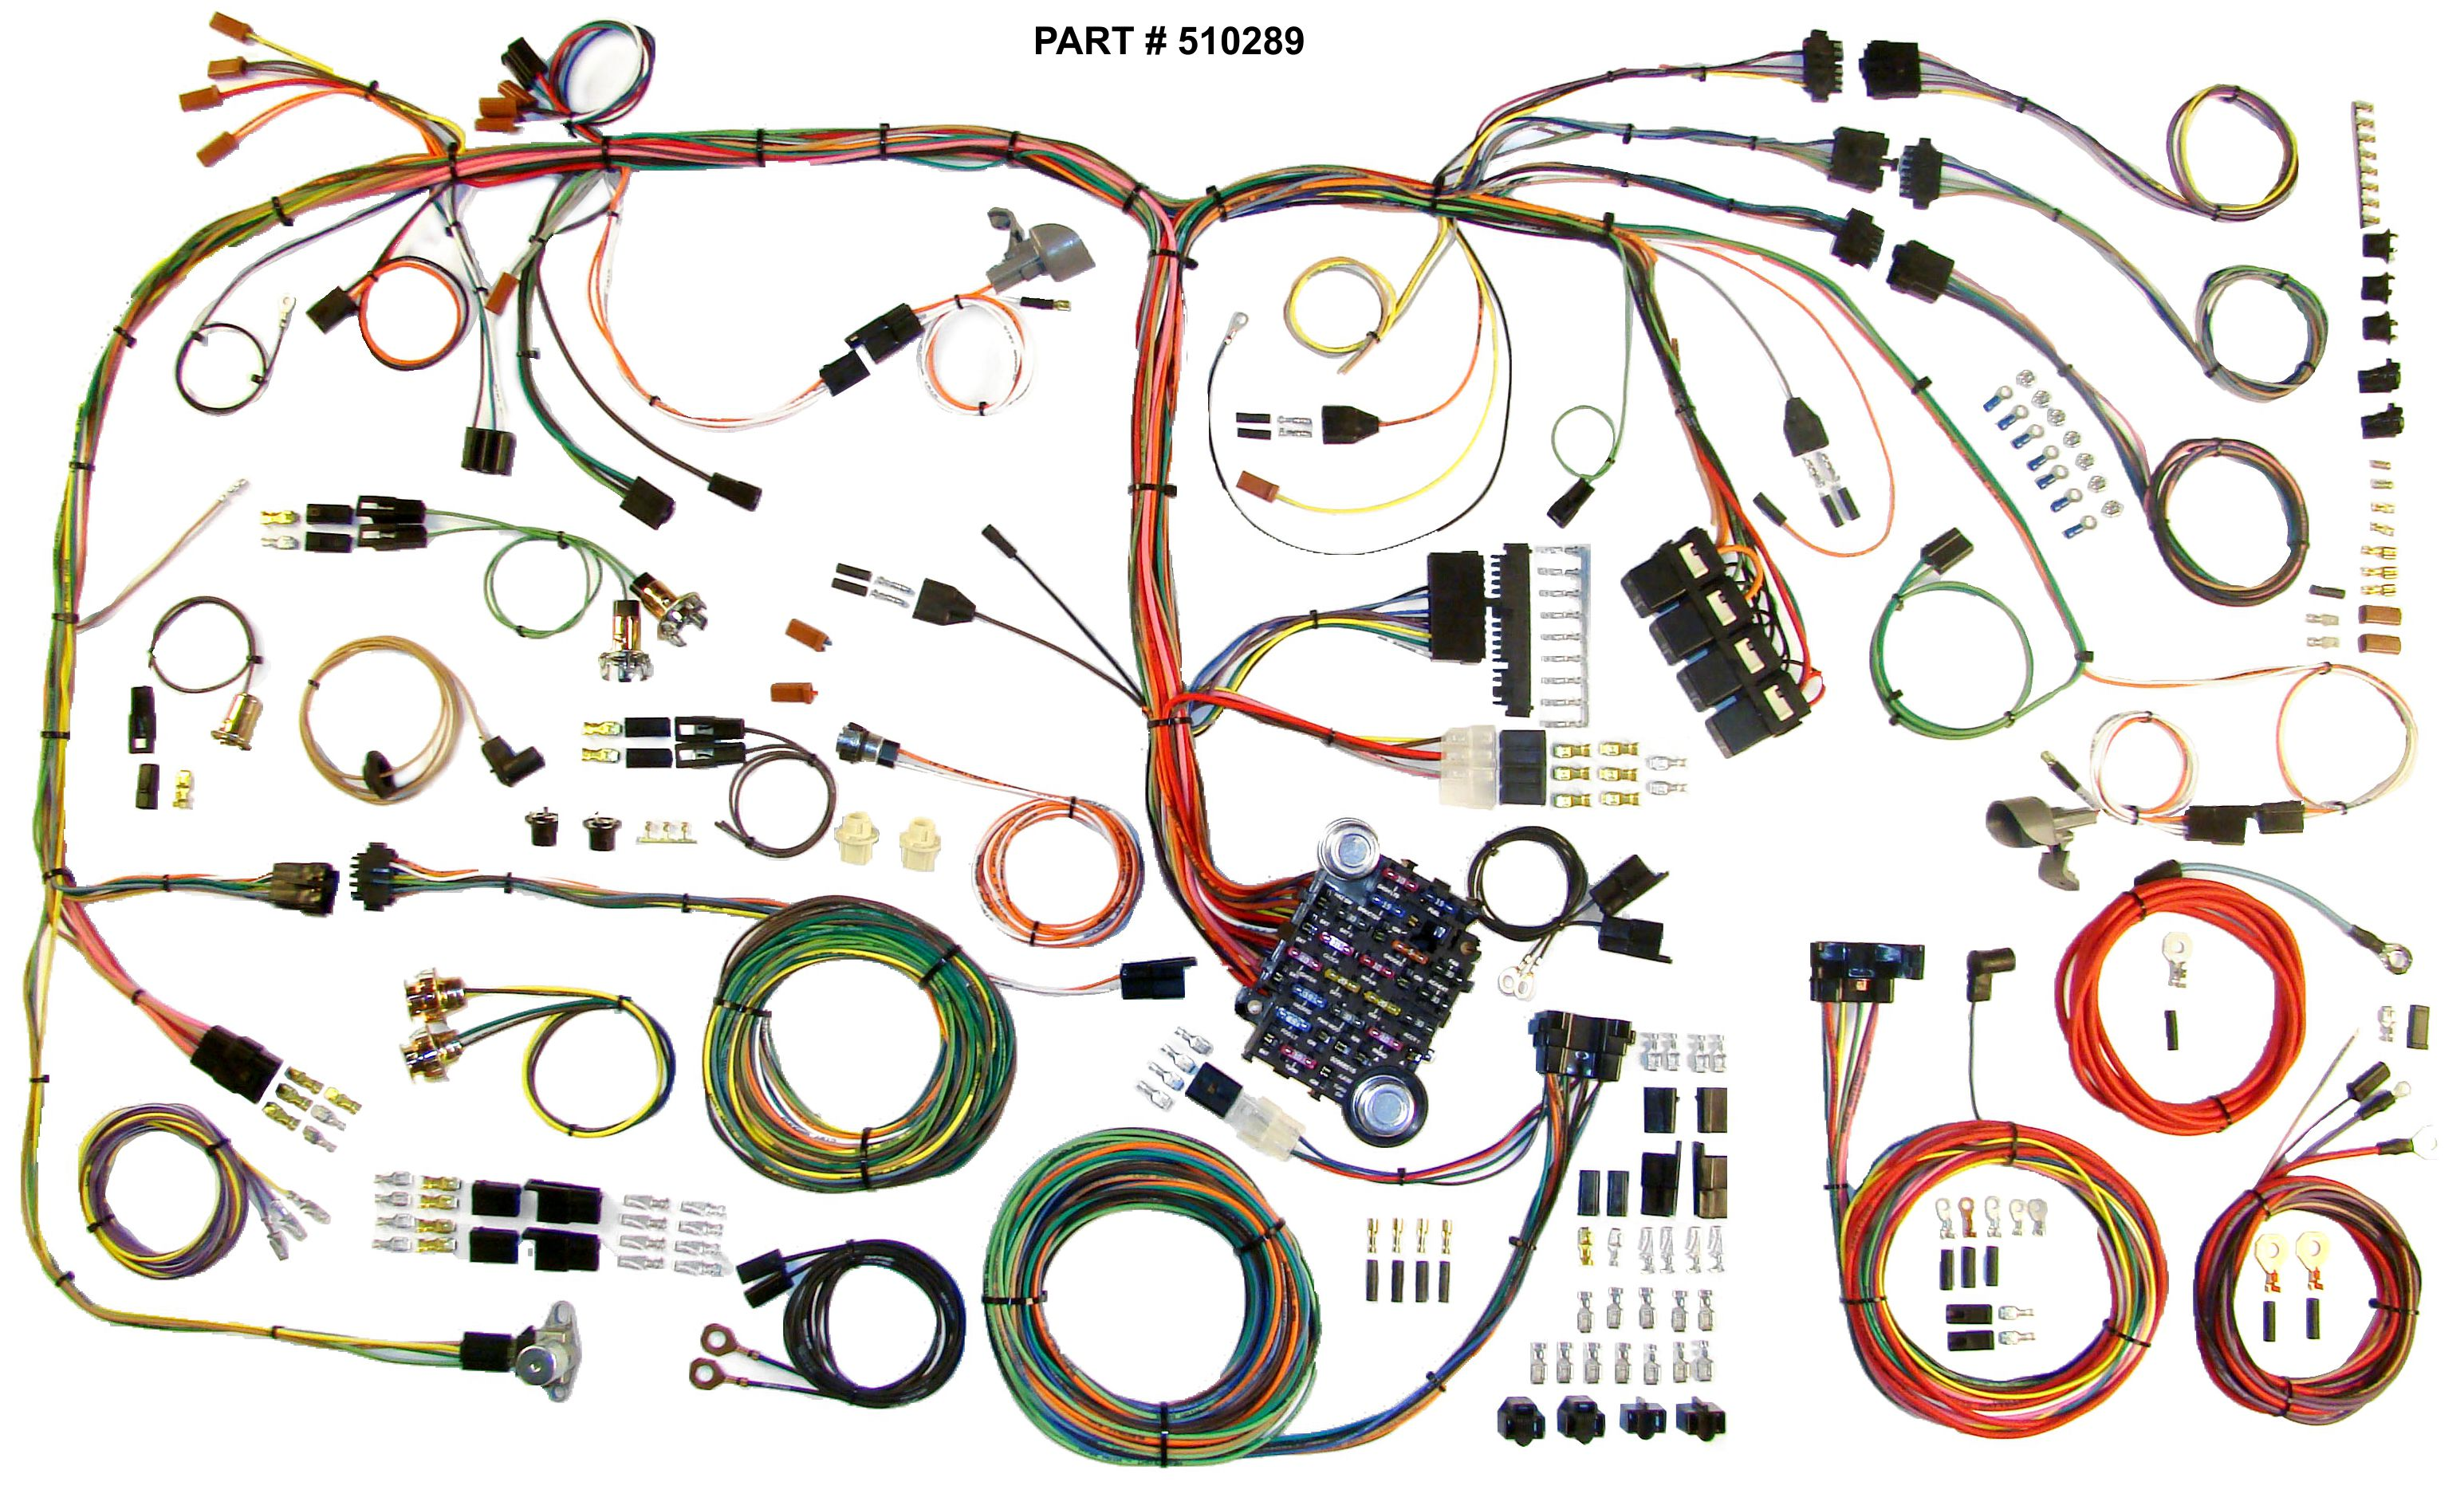 1970-74 Chrysler Barracuda Challenger RestoMod Wiring Harness System